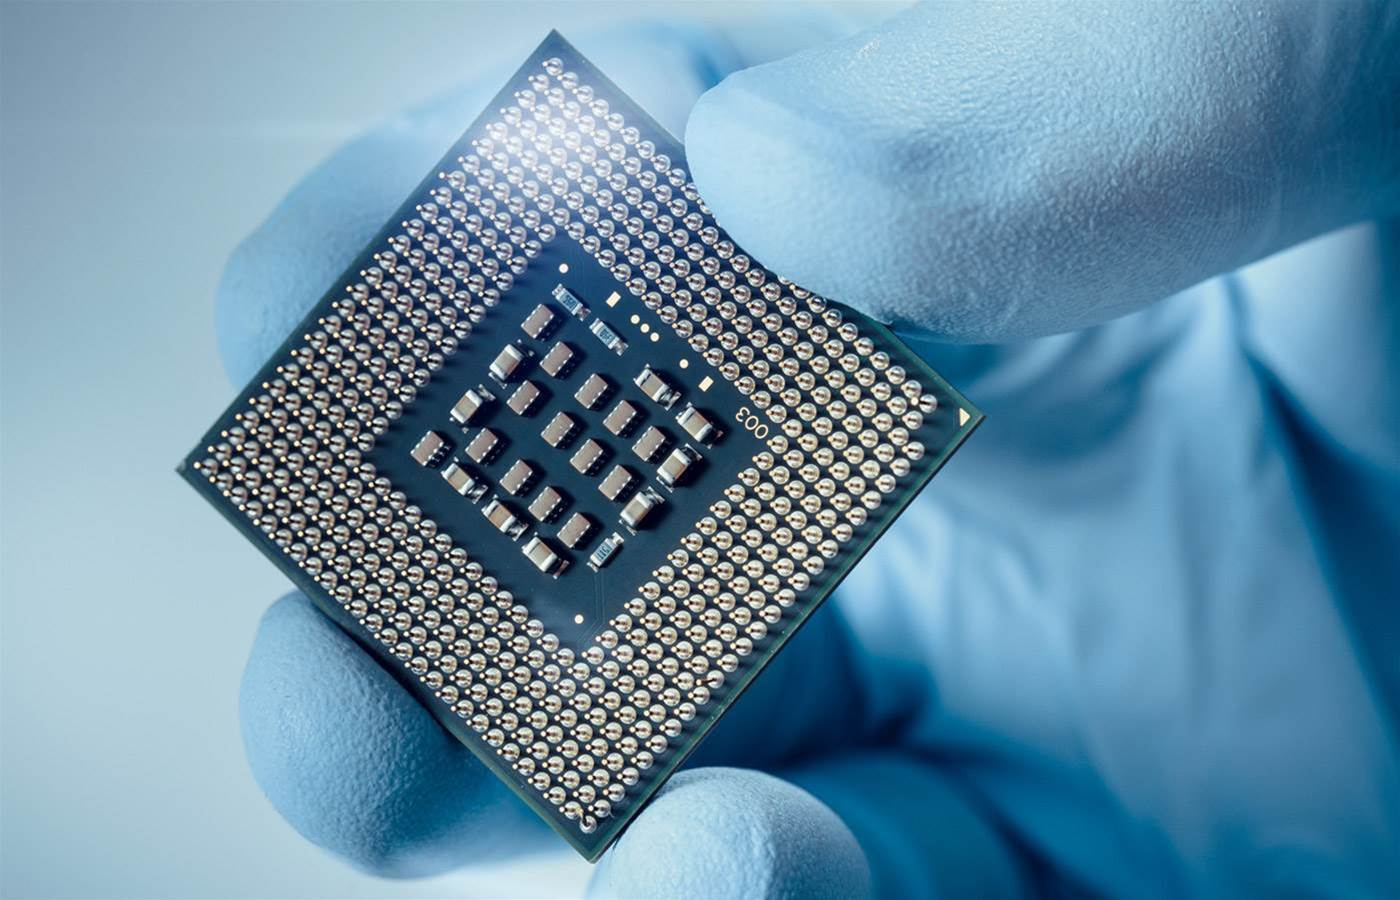 Intel CPU shortage to ease by mid-2019: interim CEO